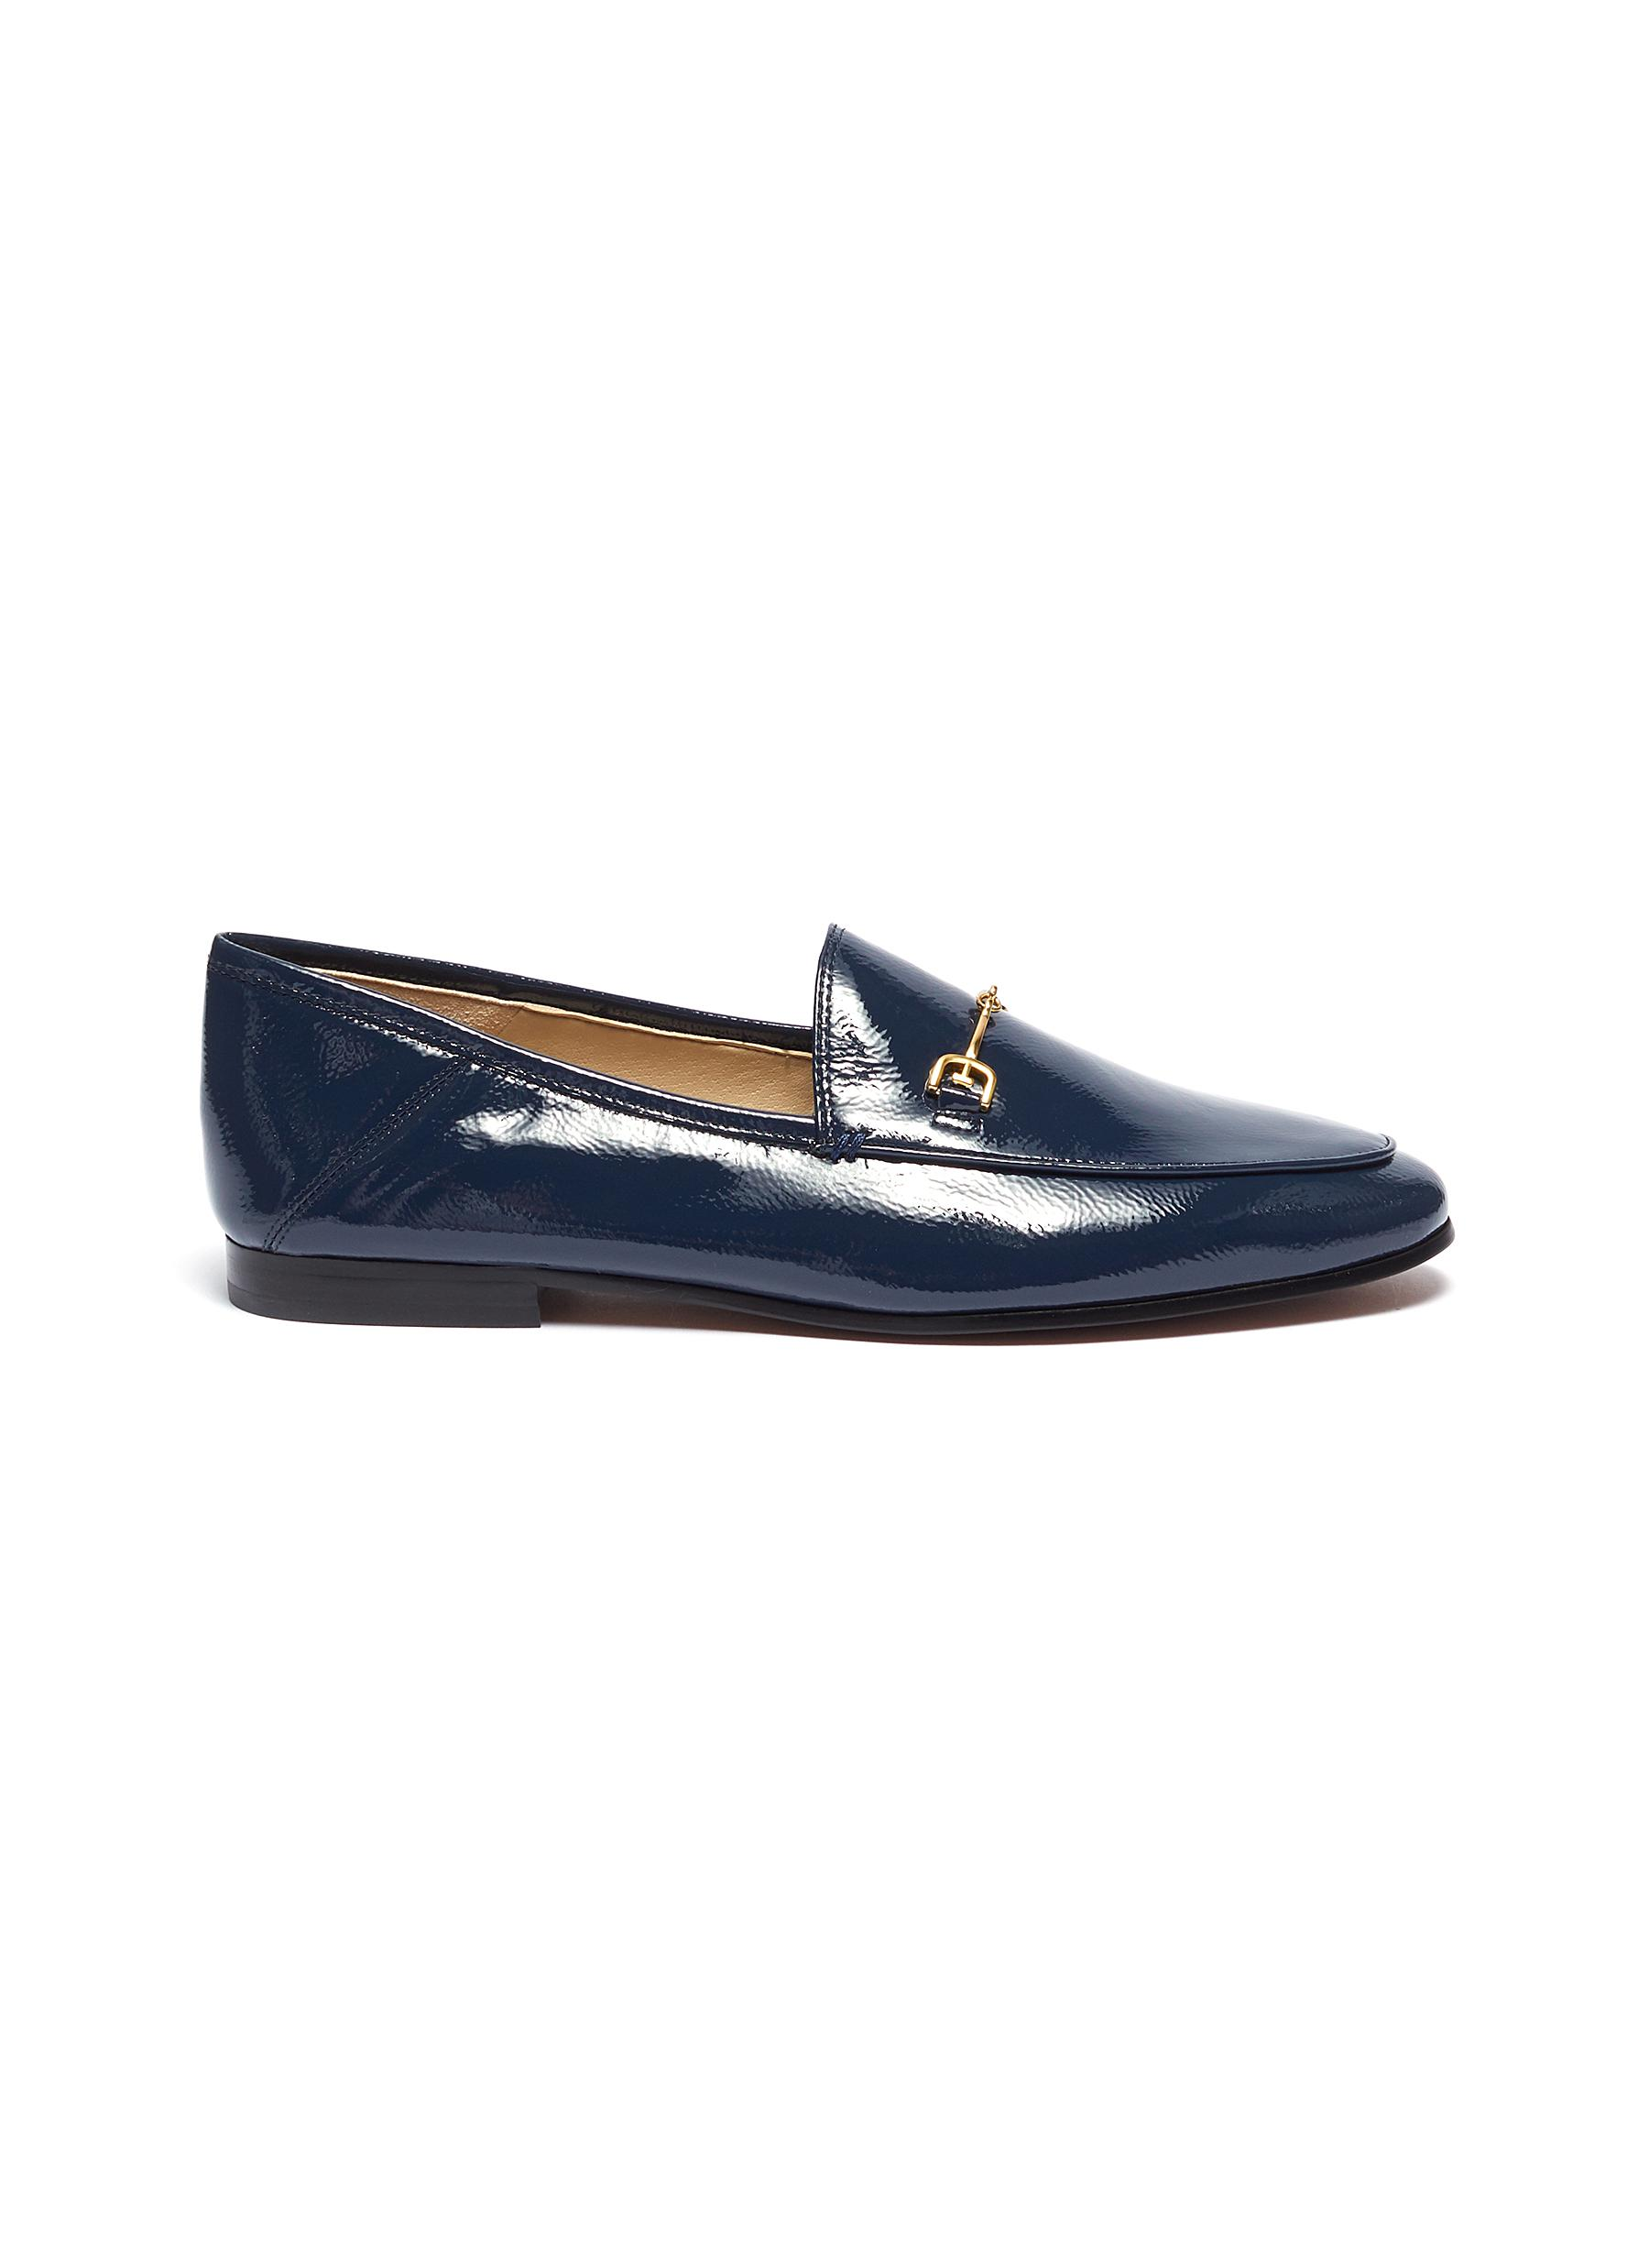 Loraine horsebit leather loafers by Sam Edelman